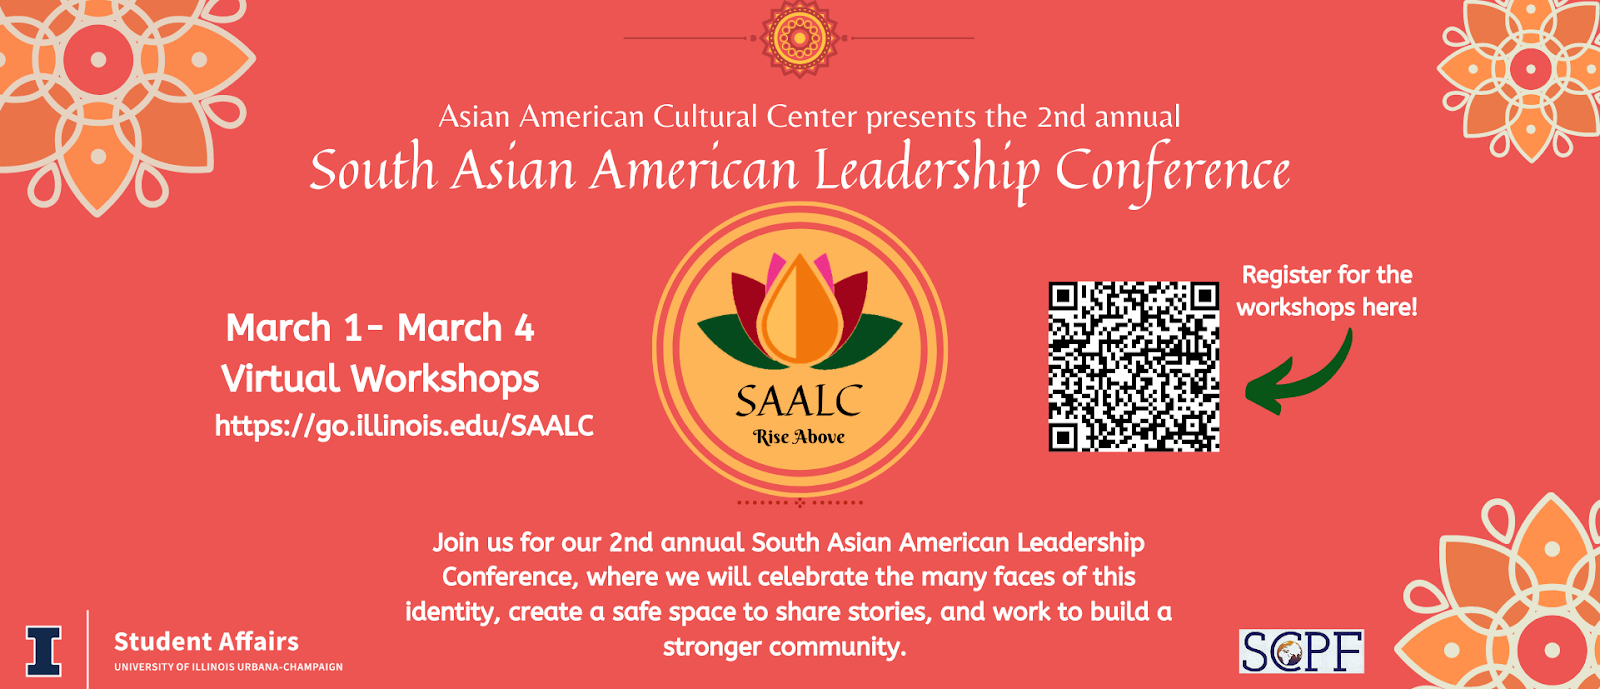 Picture of the South Asian American Leadership Conference banner